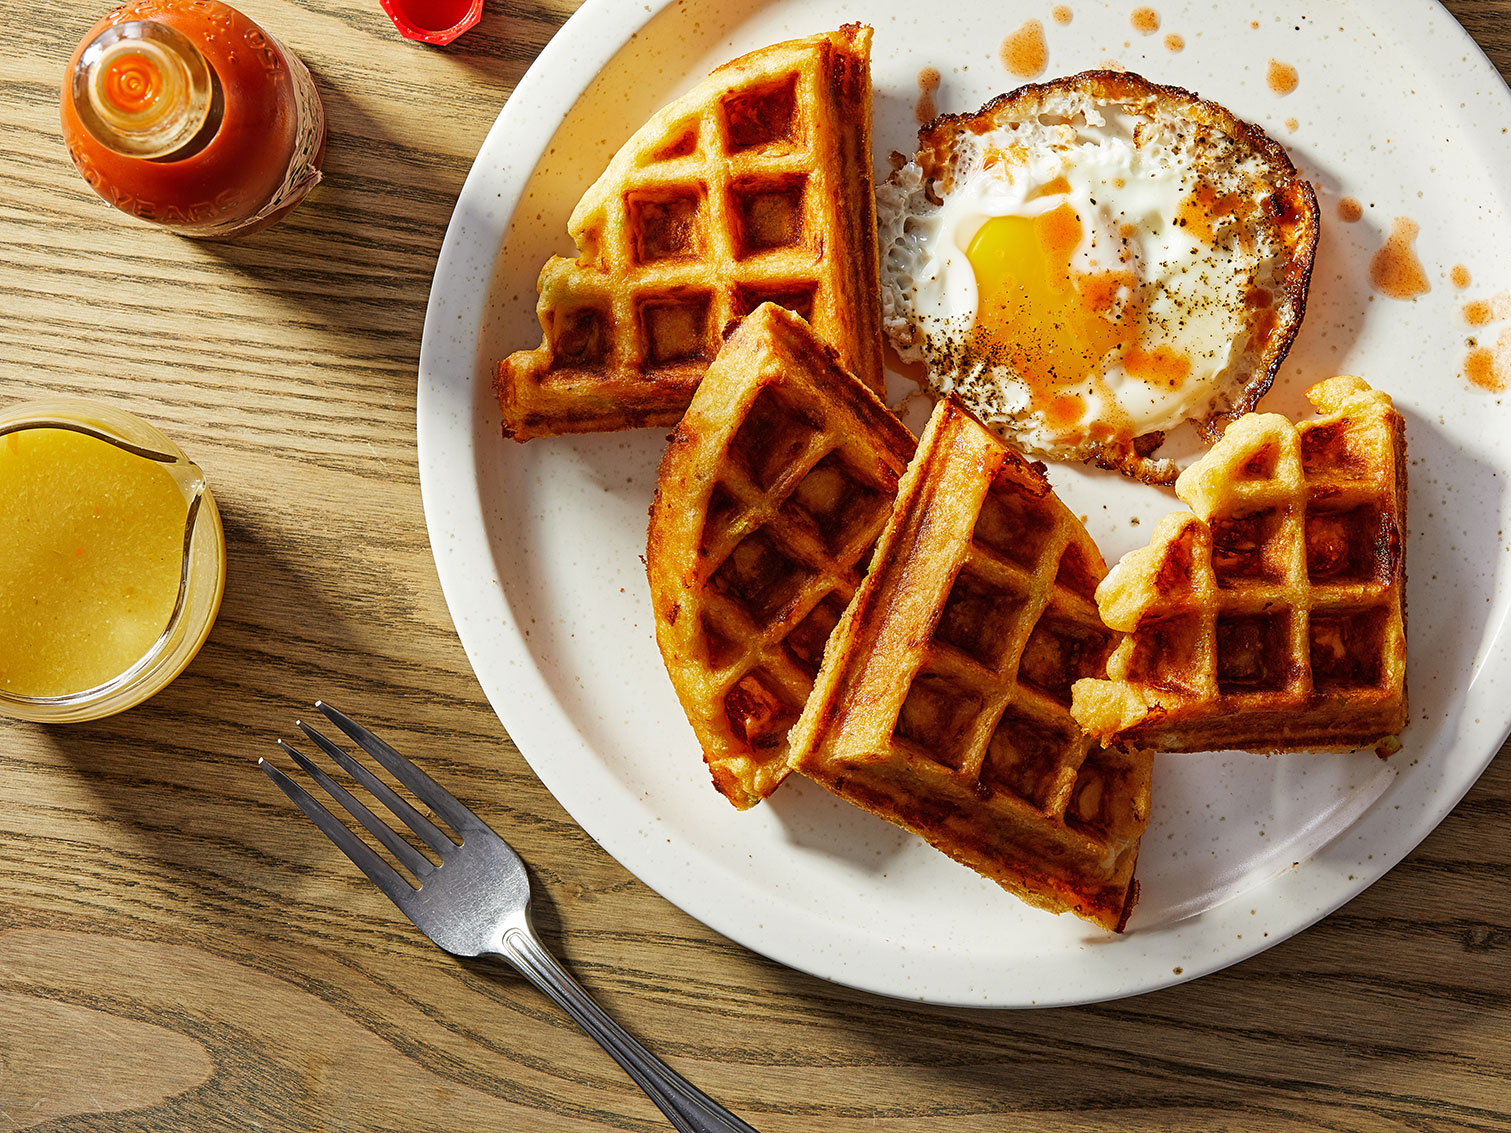 cornmeal-waffles-with-cheddar-chipotle-and-scallions-tout-FT-BLOG12519.jpg